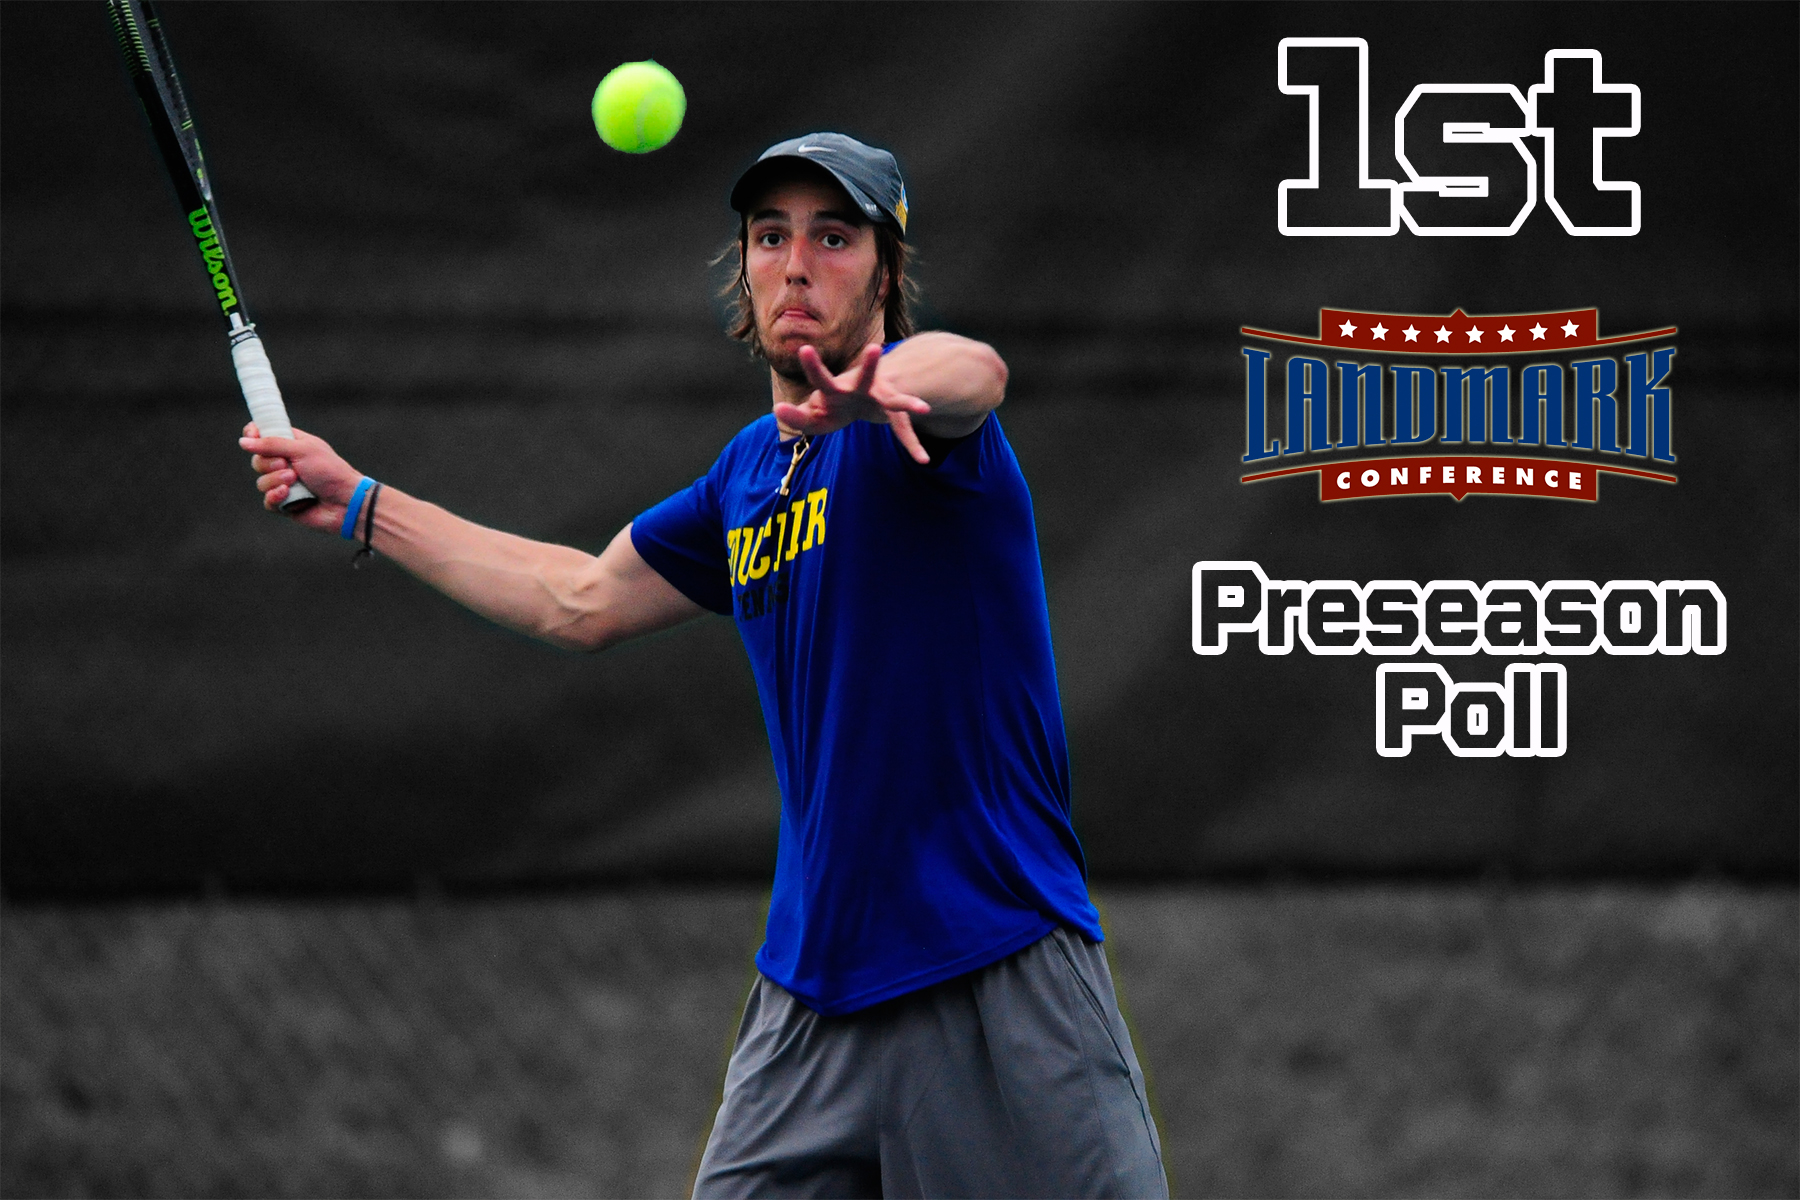 Men's Tennis Slated to Three-Peat in 2018 Landmark Conference Preseason Poll